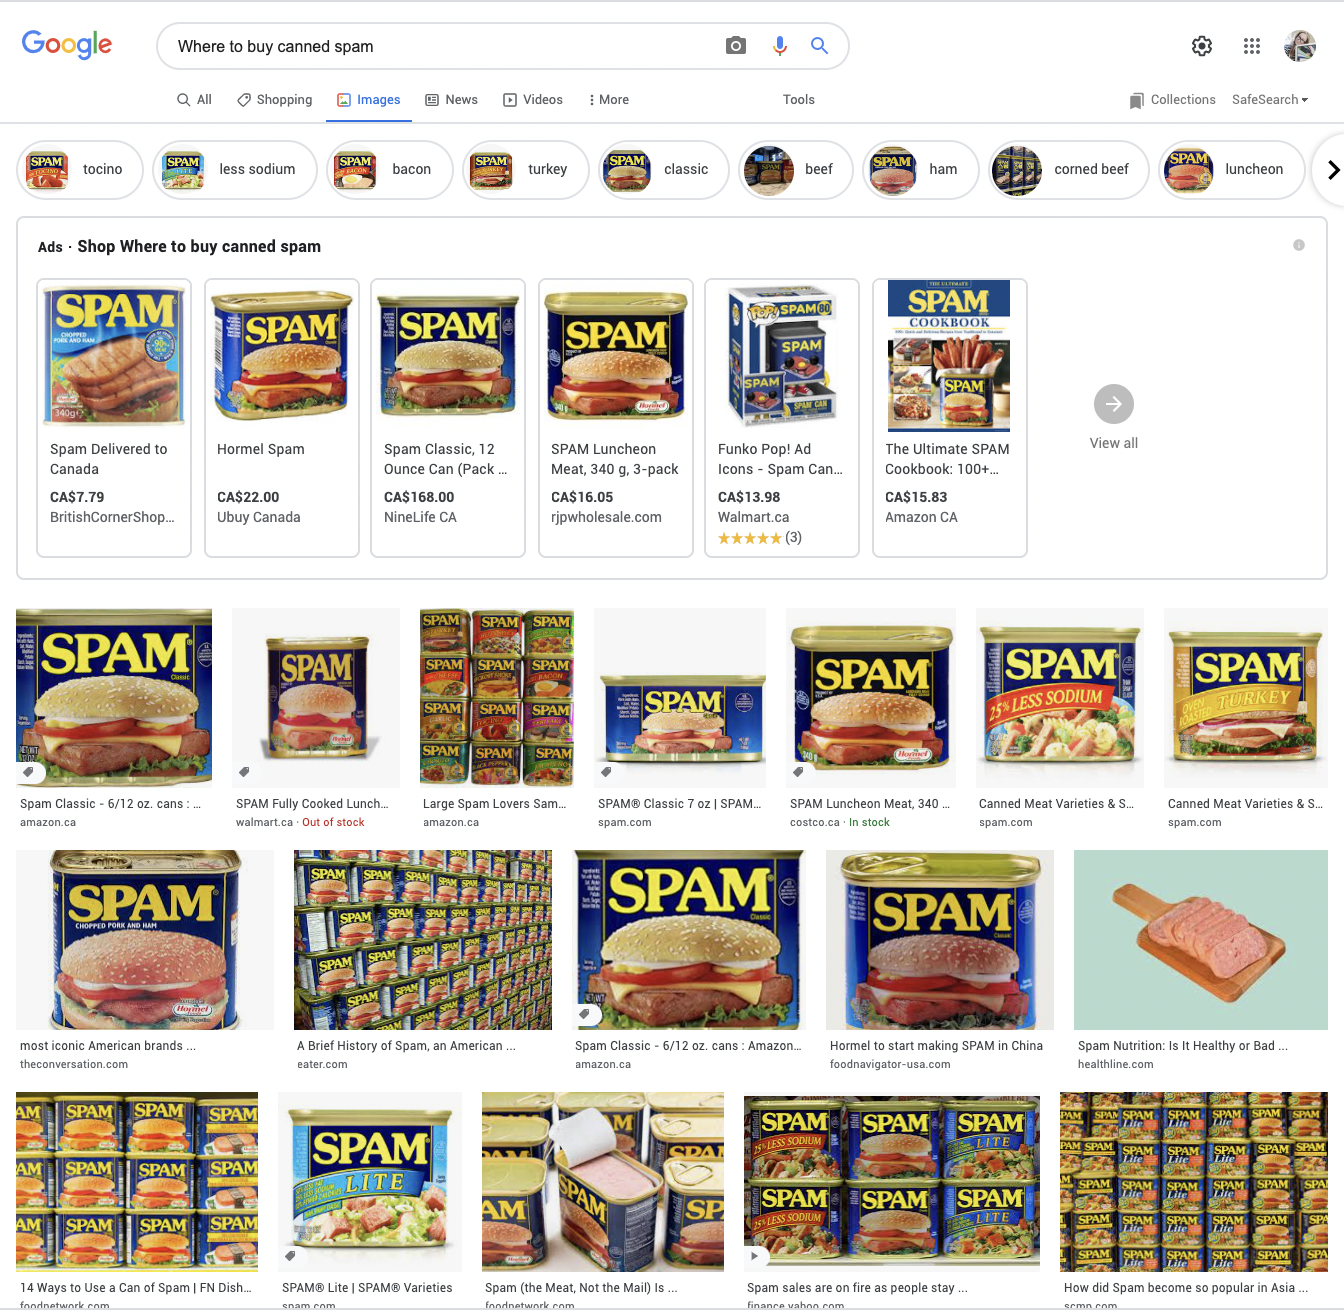 The images tab. Make it stop.